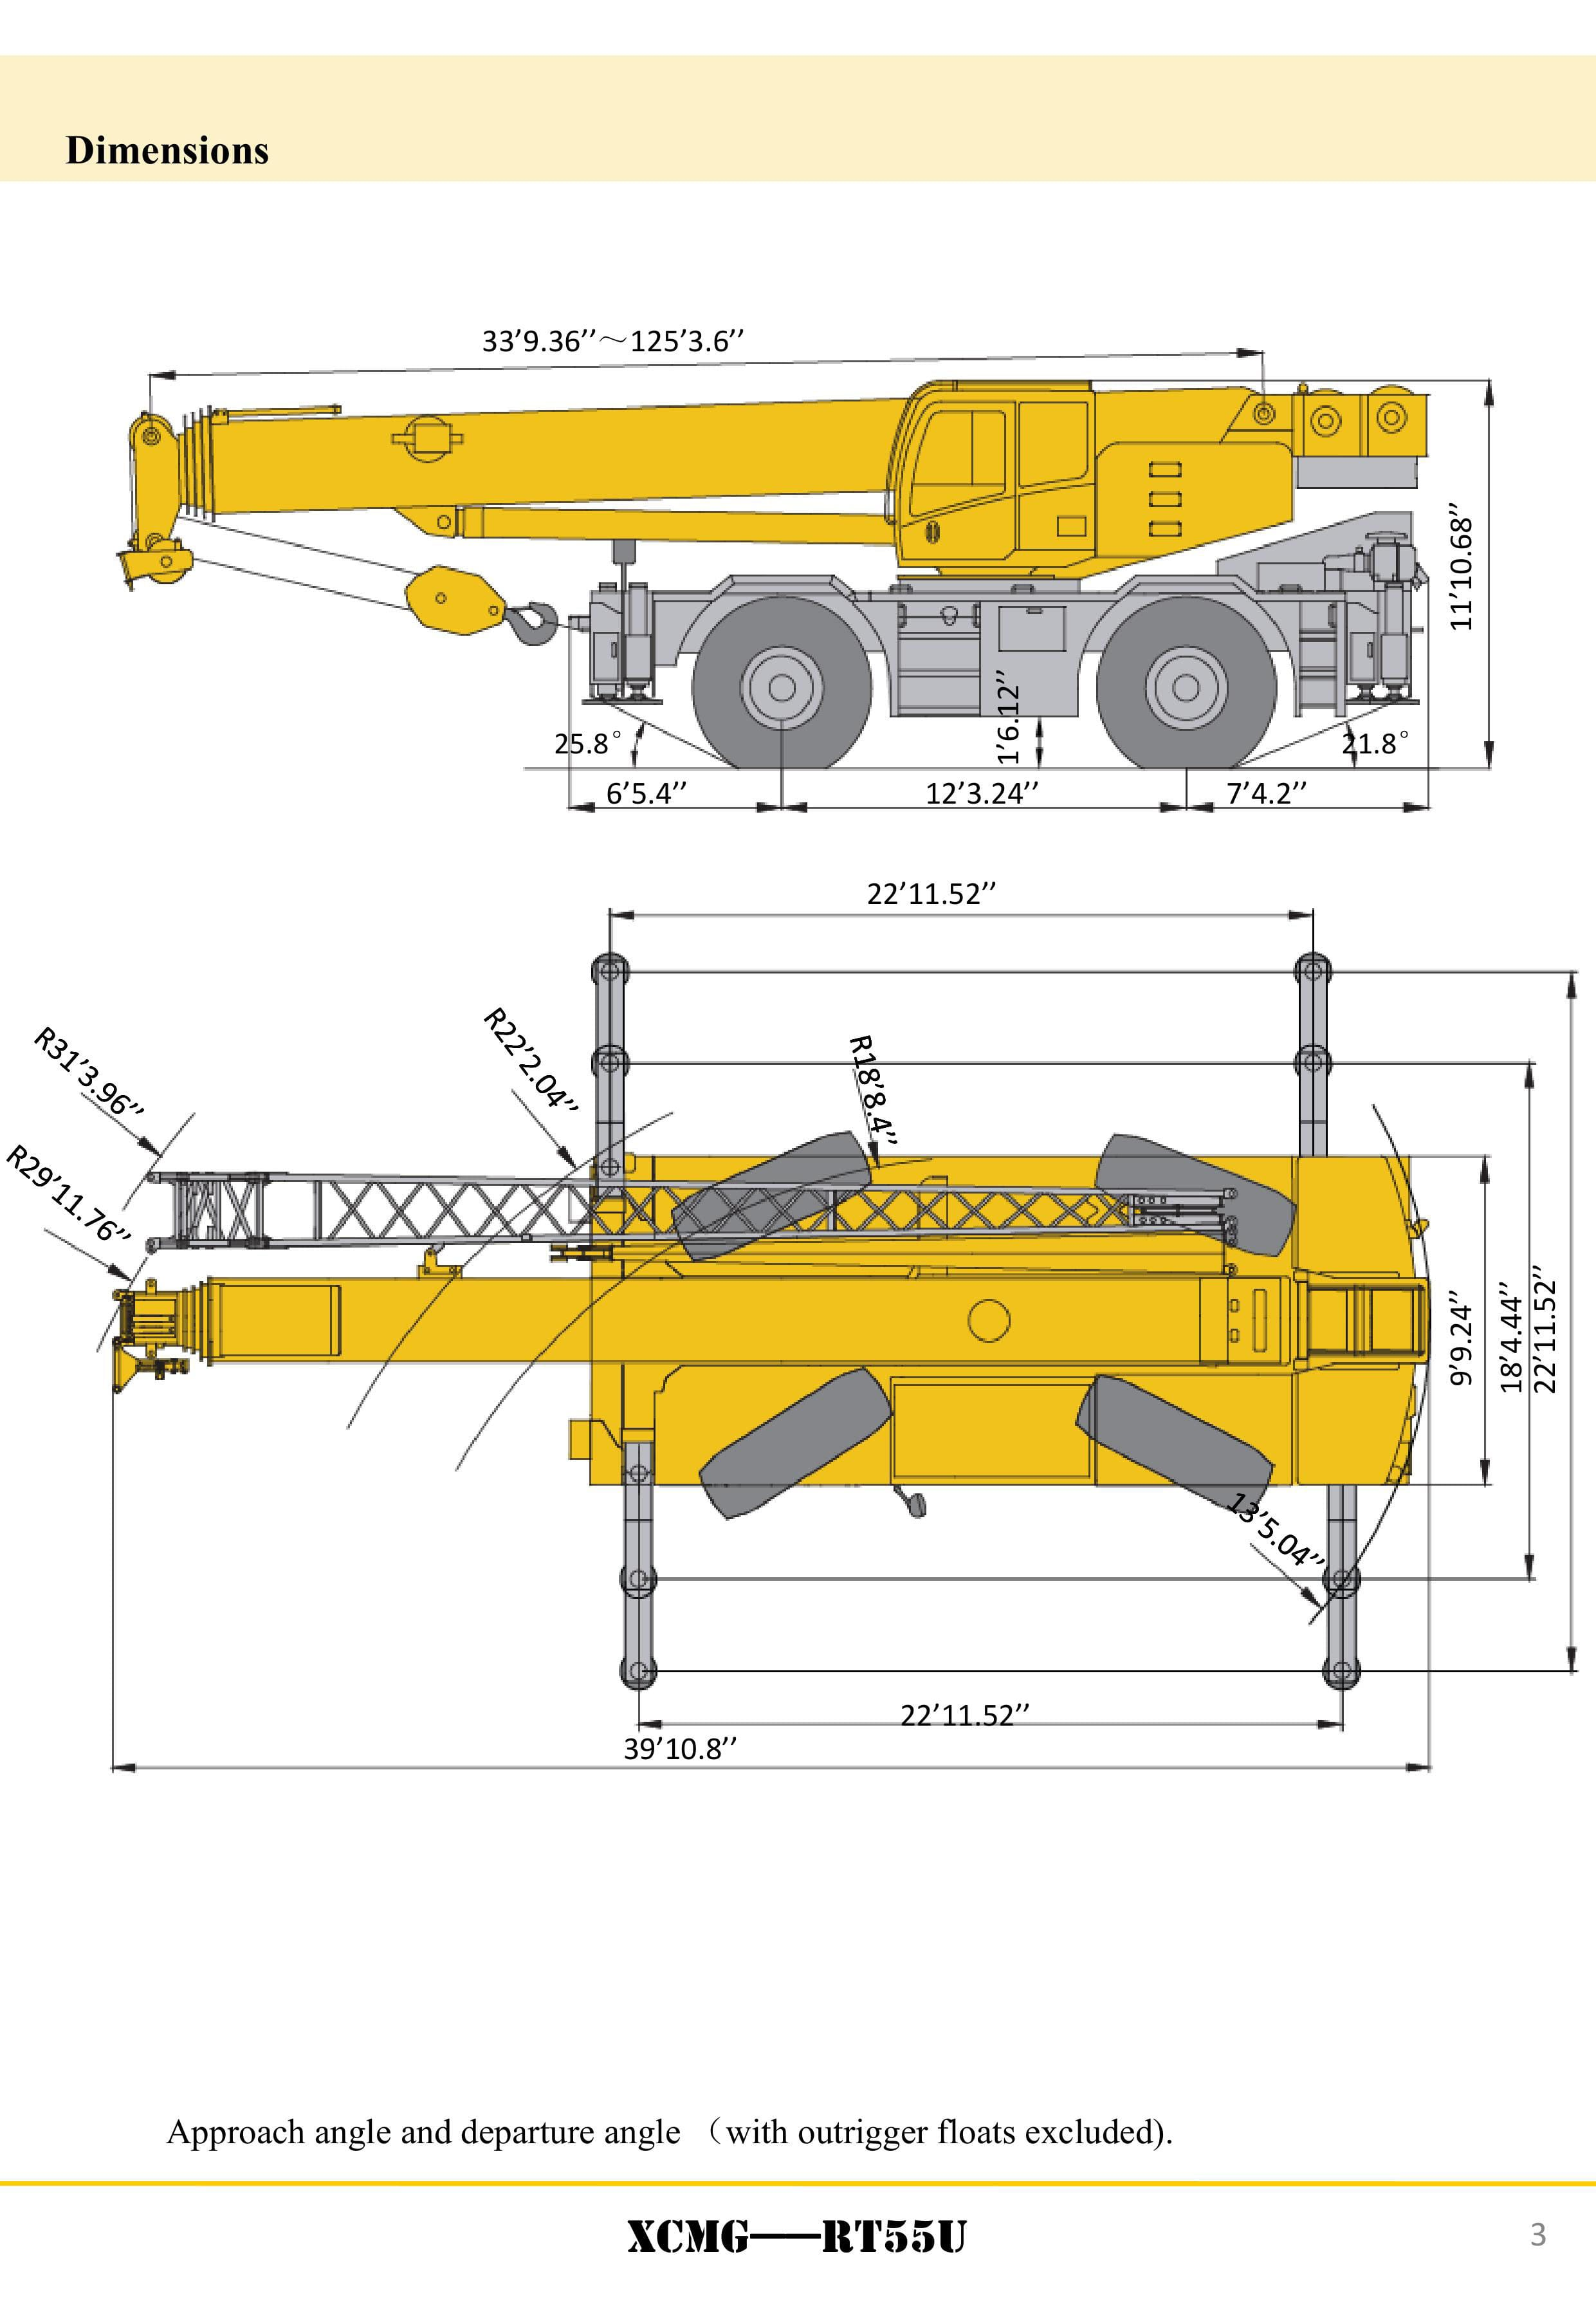 XCMG Official RT55U Rough Terrain Crane for sale